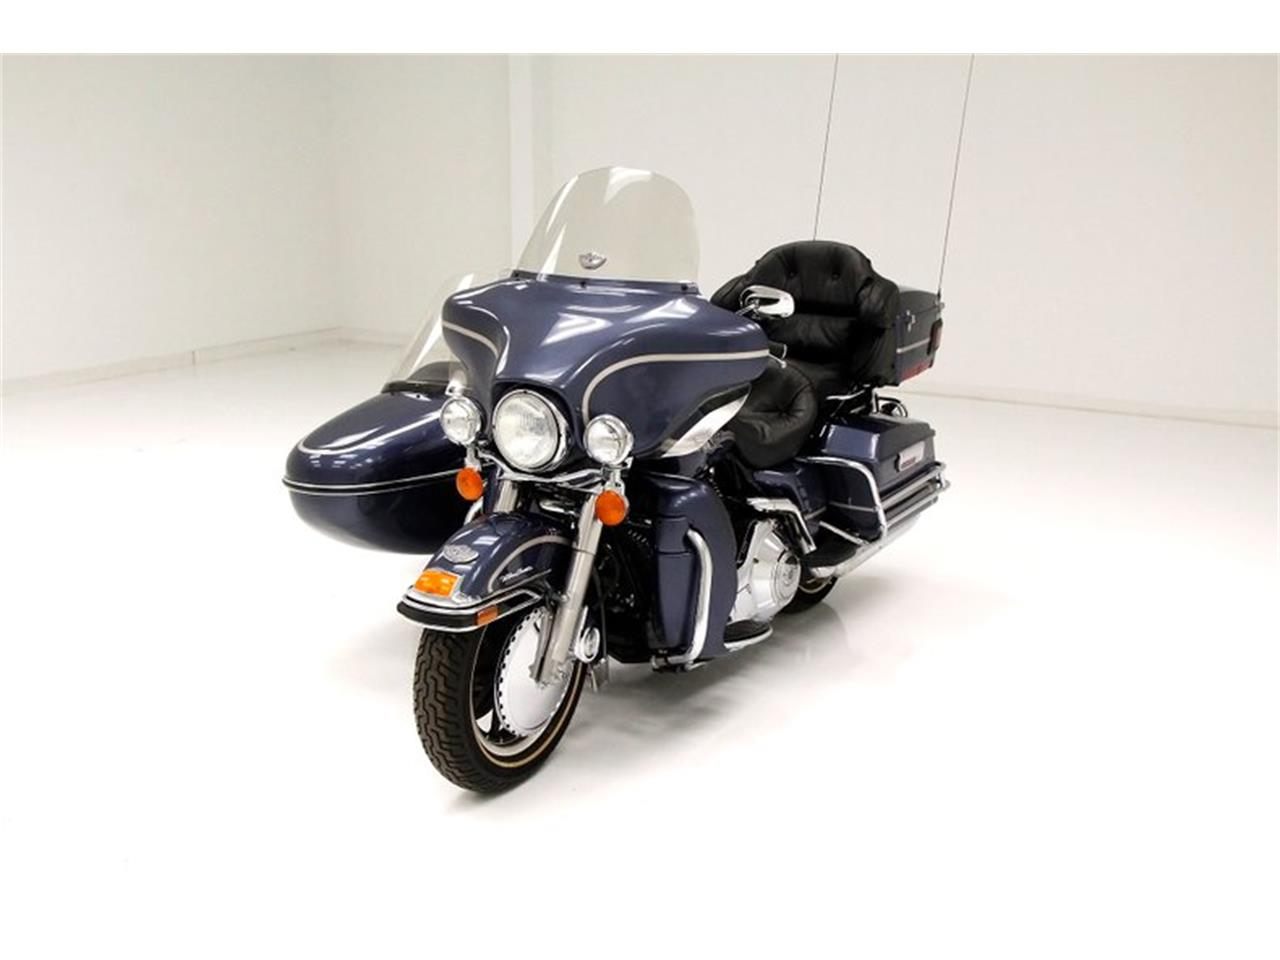 Large Picture of '03 Electra Glide located in Pennsylvania - $35,000.00 - Q3ZG